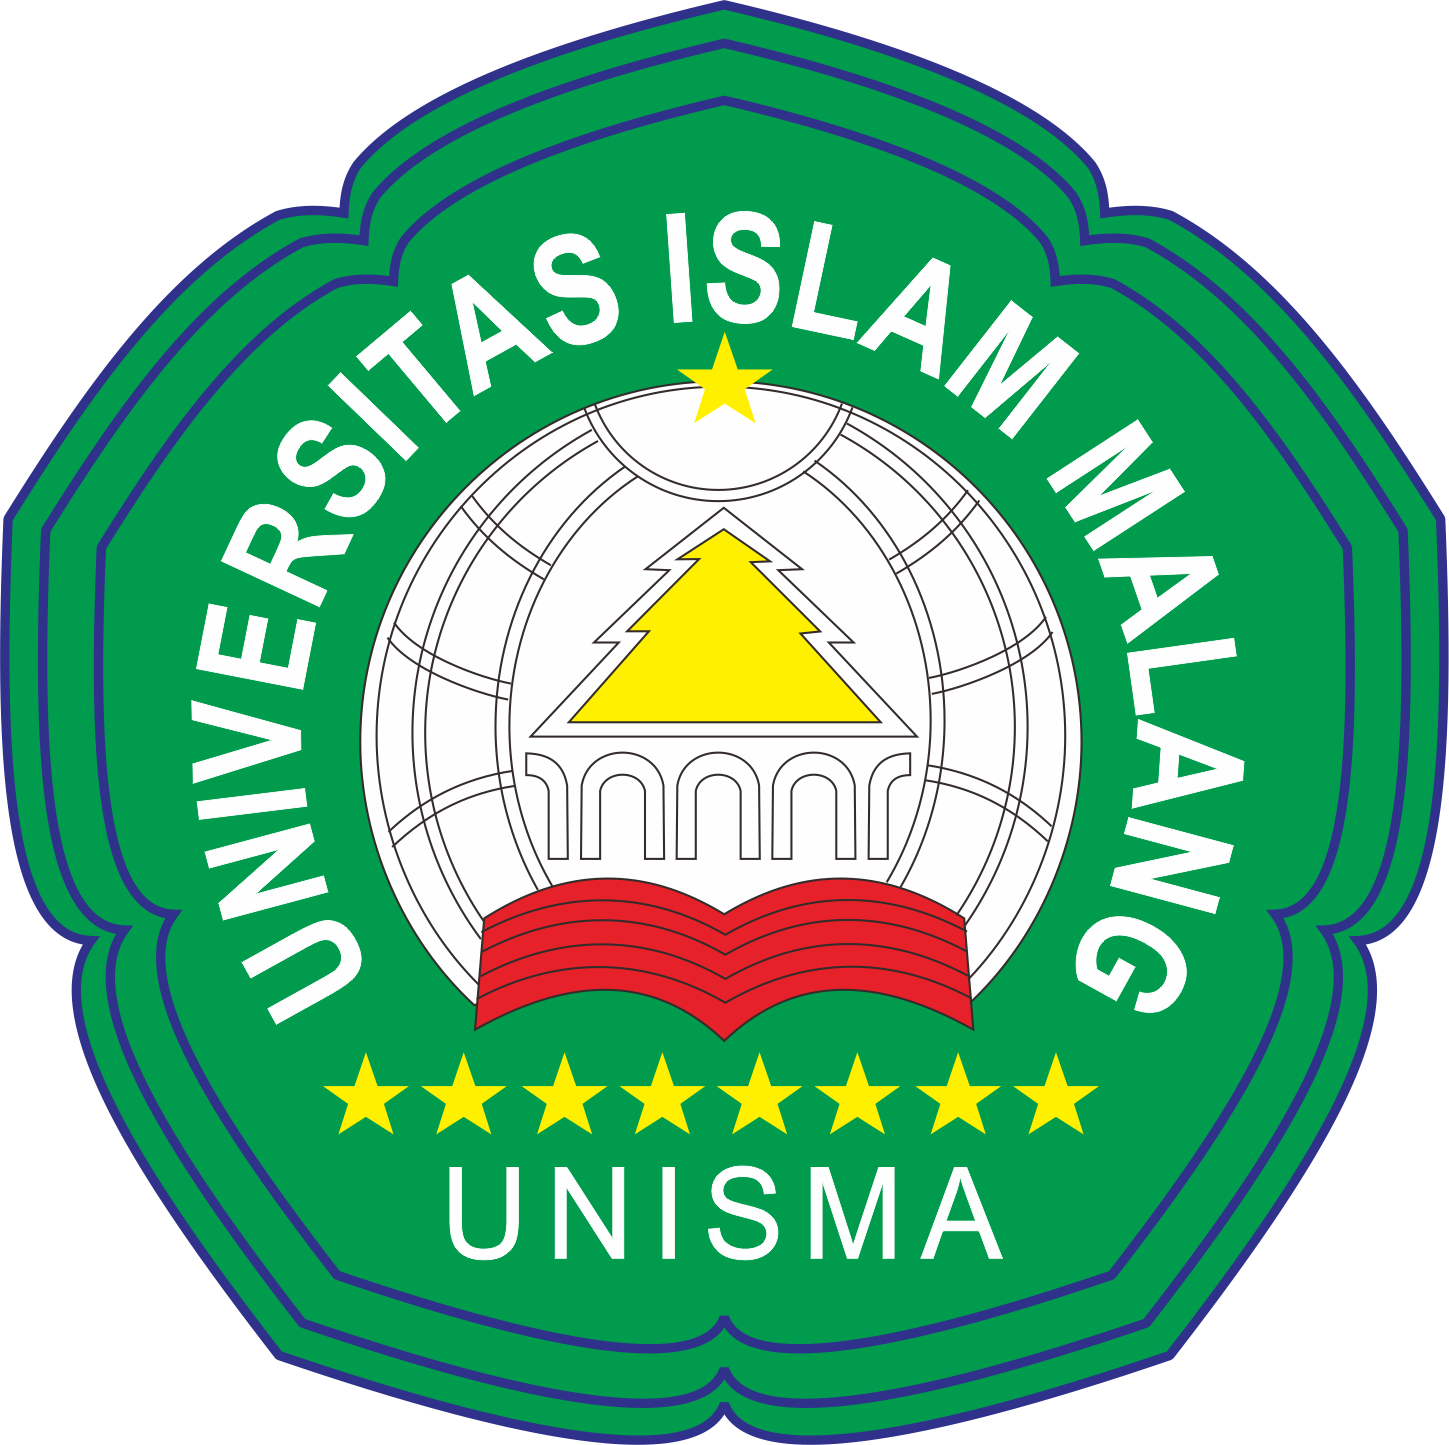 Unisma Universitas Islam Malang Download Lengkap